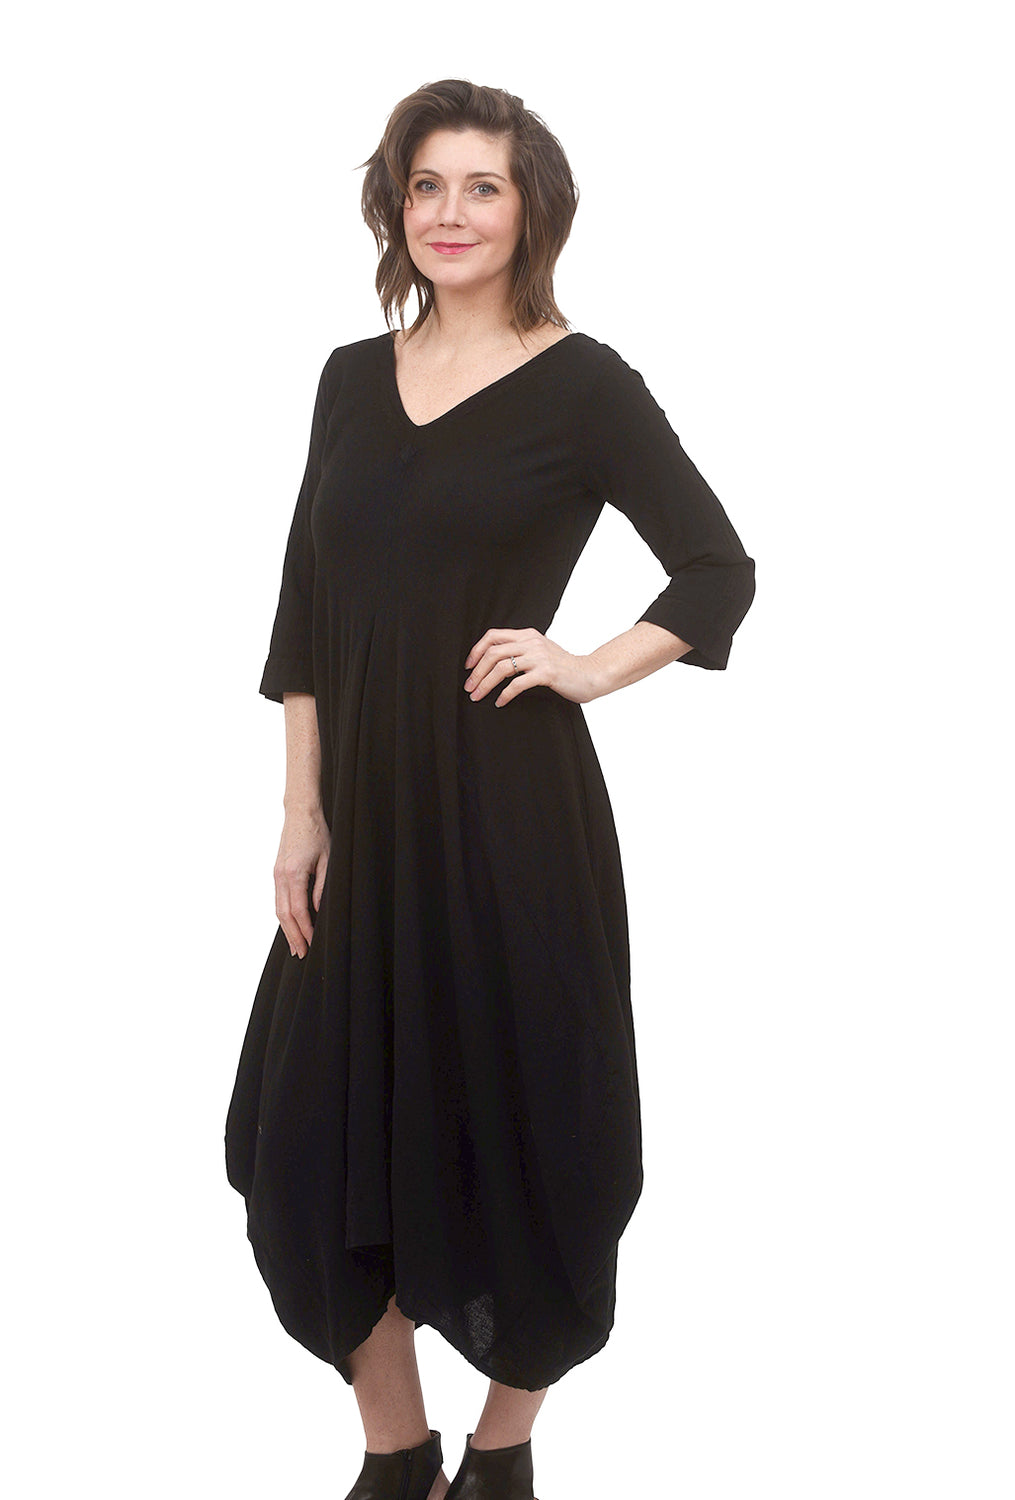 Bella Dress, Black